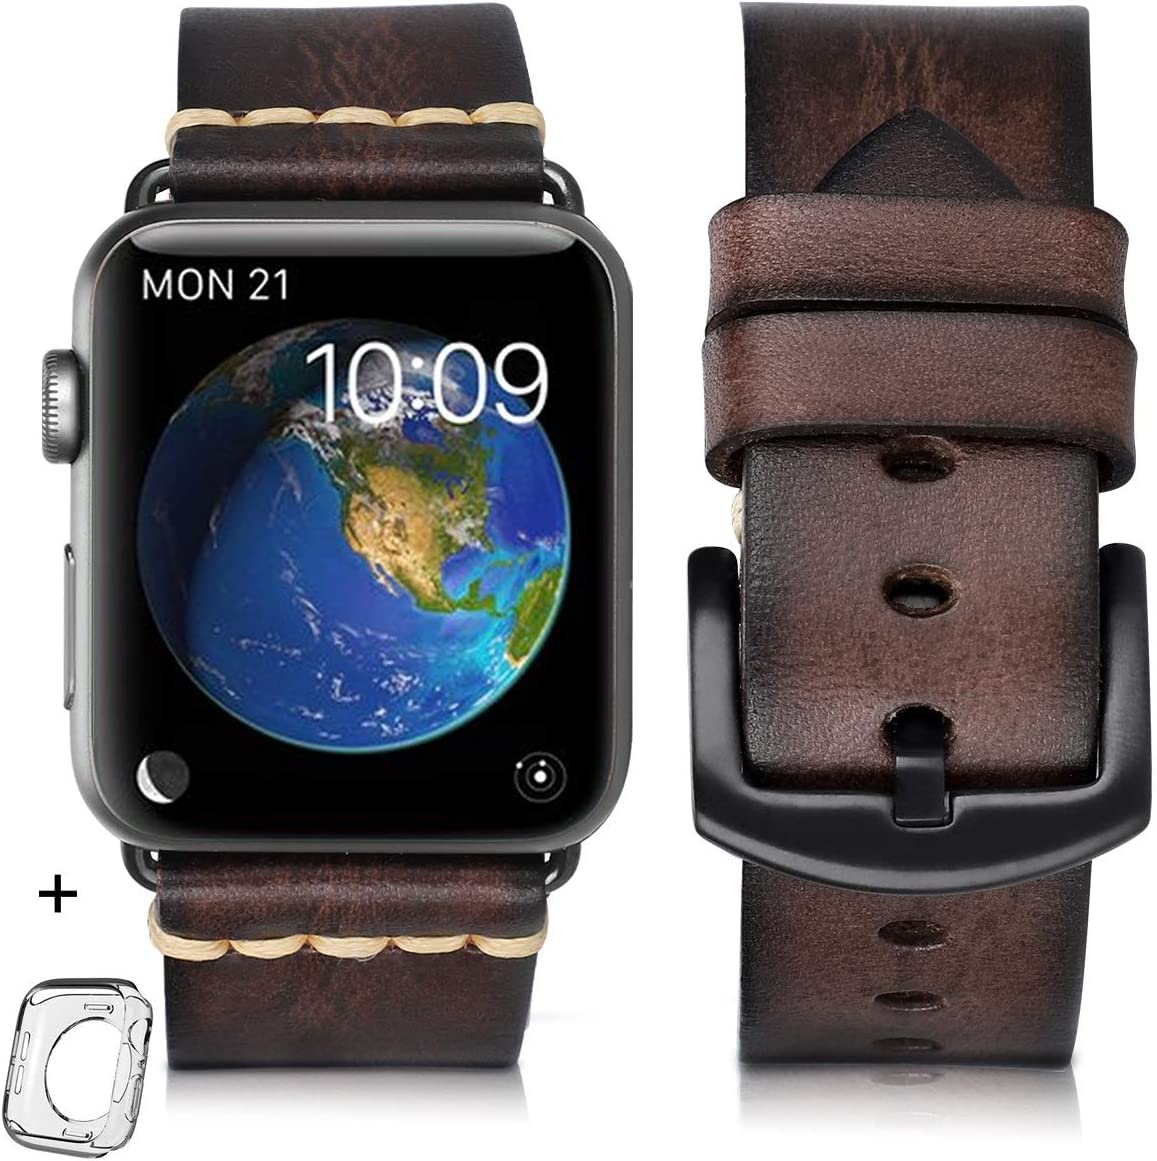 Compatible for Apple Watch Band 38mm 40mm 42mm 44mm Men,Top Grain Leather Band Replacement Strap iWatch Series 6/5/ 4/ 3/ 2/ 1,SE,Sport, Edition. new arrival (coffee/Black buckle, 38mm40mm)